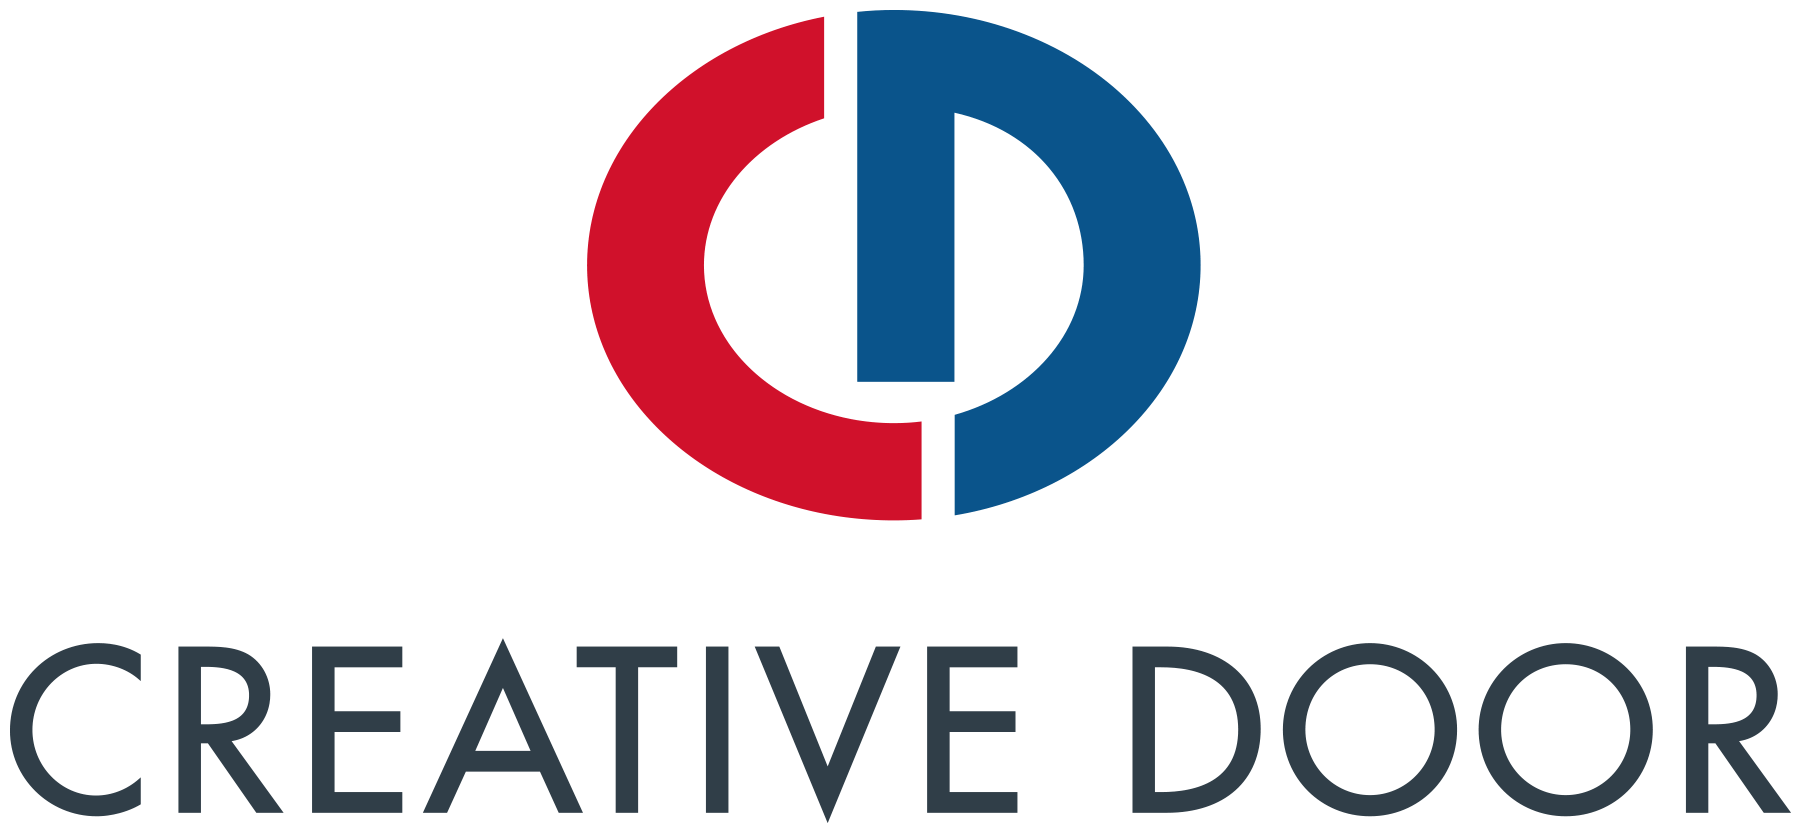 Creative Door logo